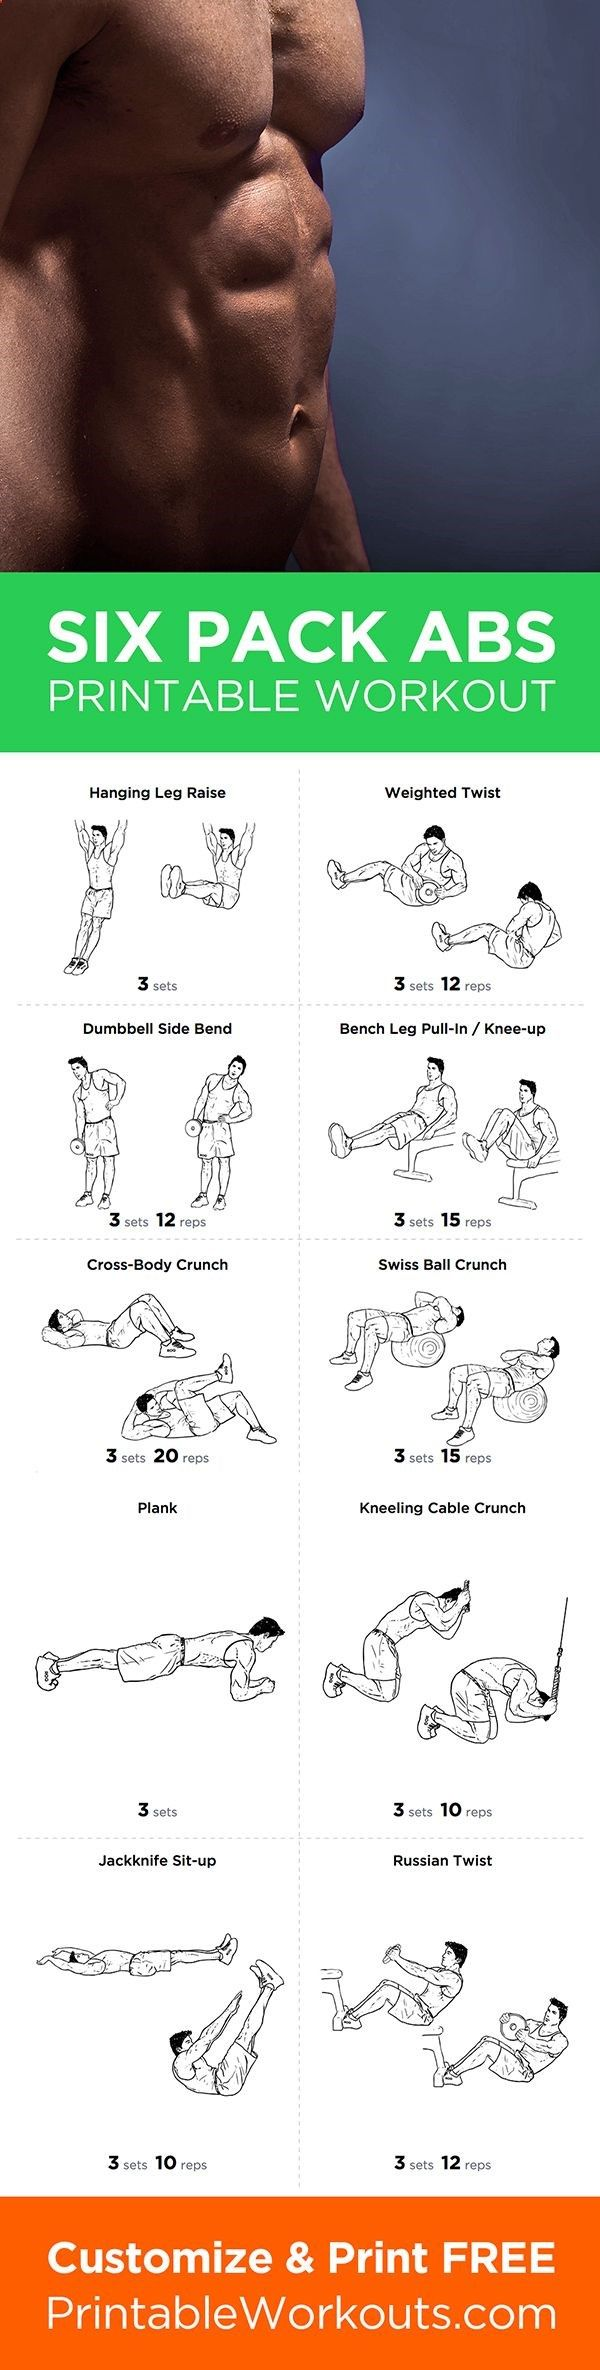 Six Pack Abs Gain Muscle Or Weight Loss These Workout Plan Is Great For Women